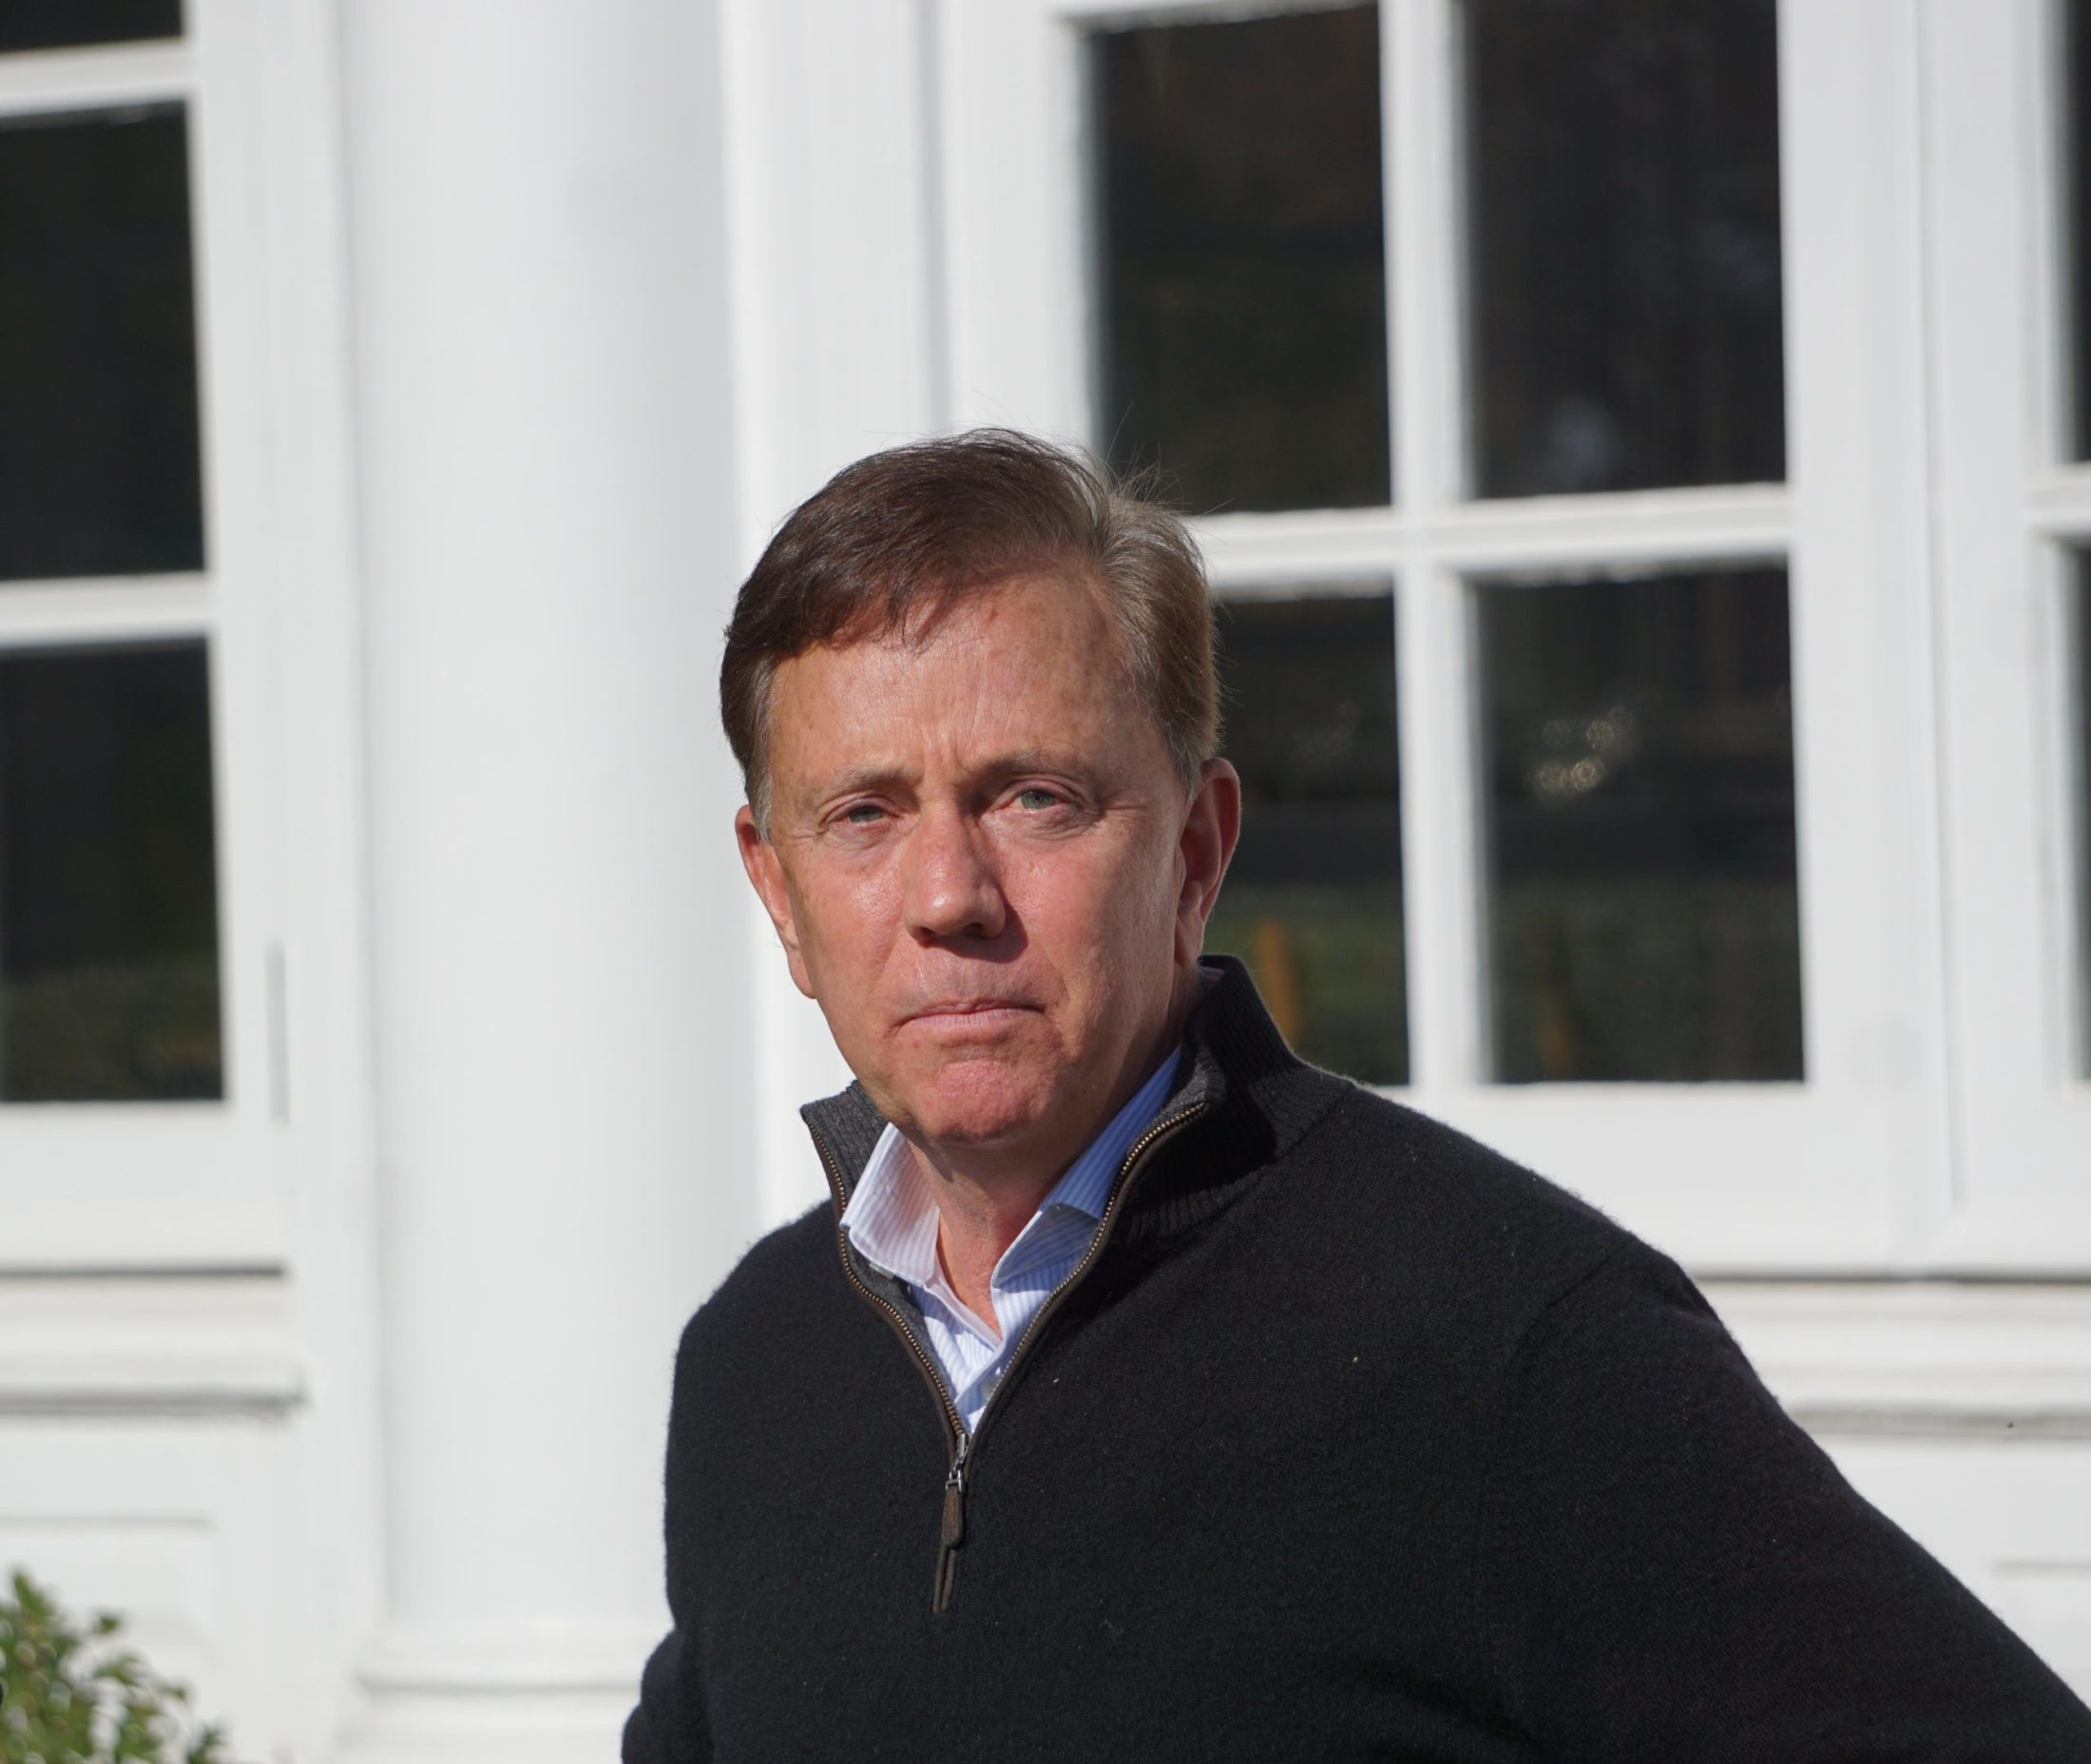 Lamont rules out tolls, waits for clarity in White House